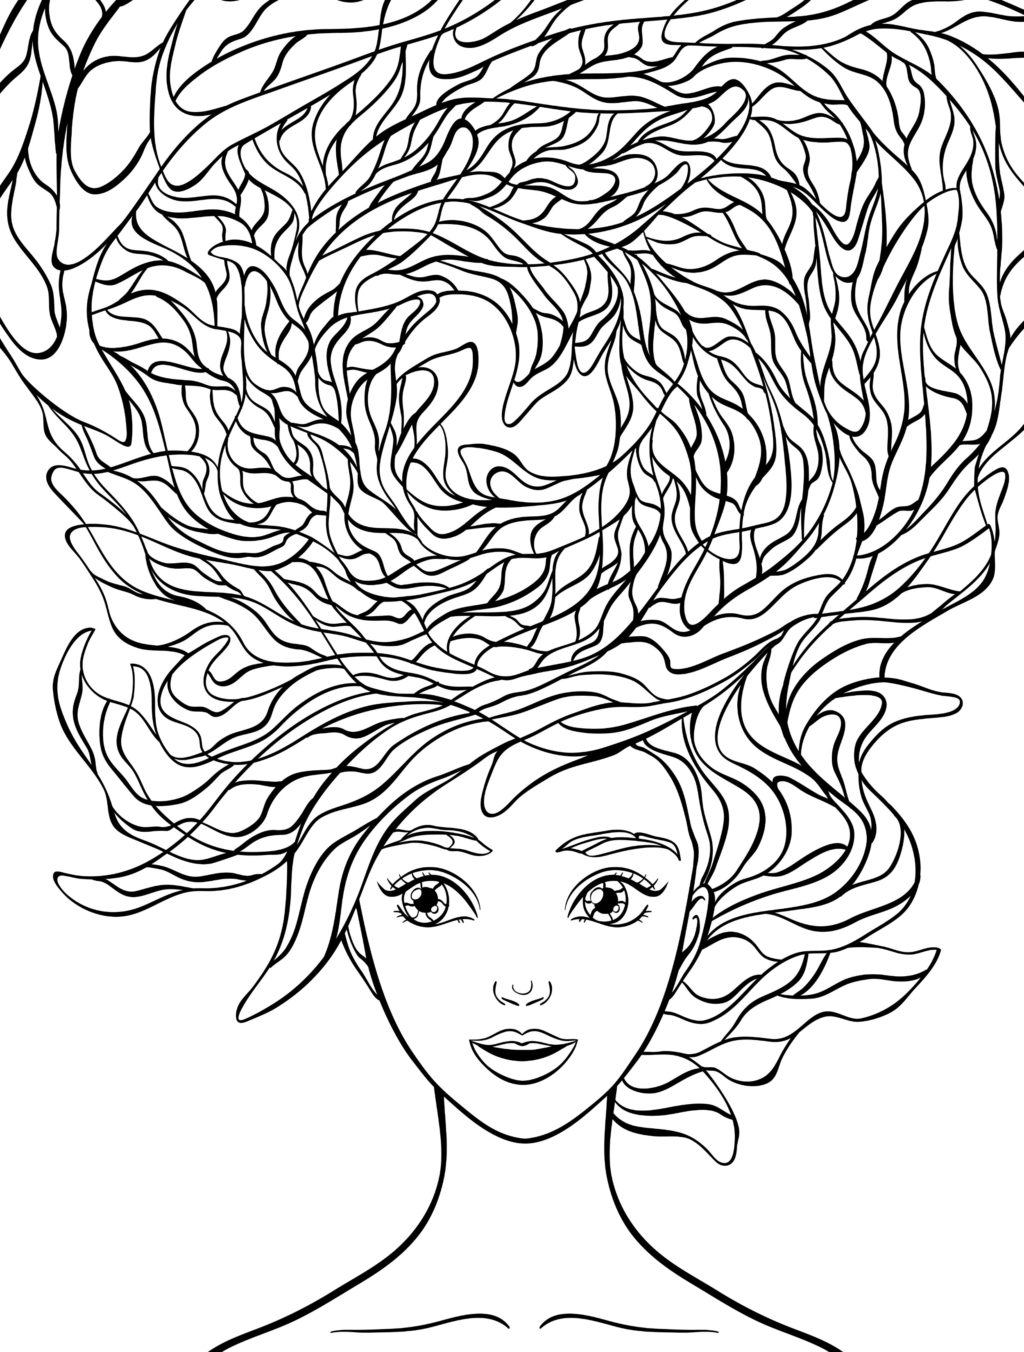 1024x1352 Manga Girl Long Hair Coloring Pages Sketches Bdefaadbfa Adult